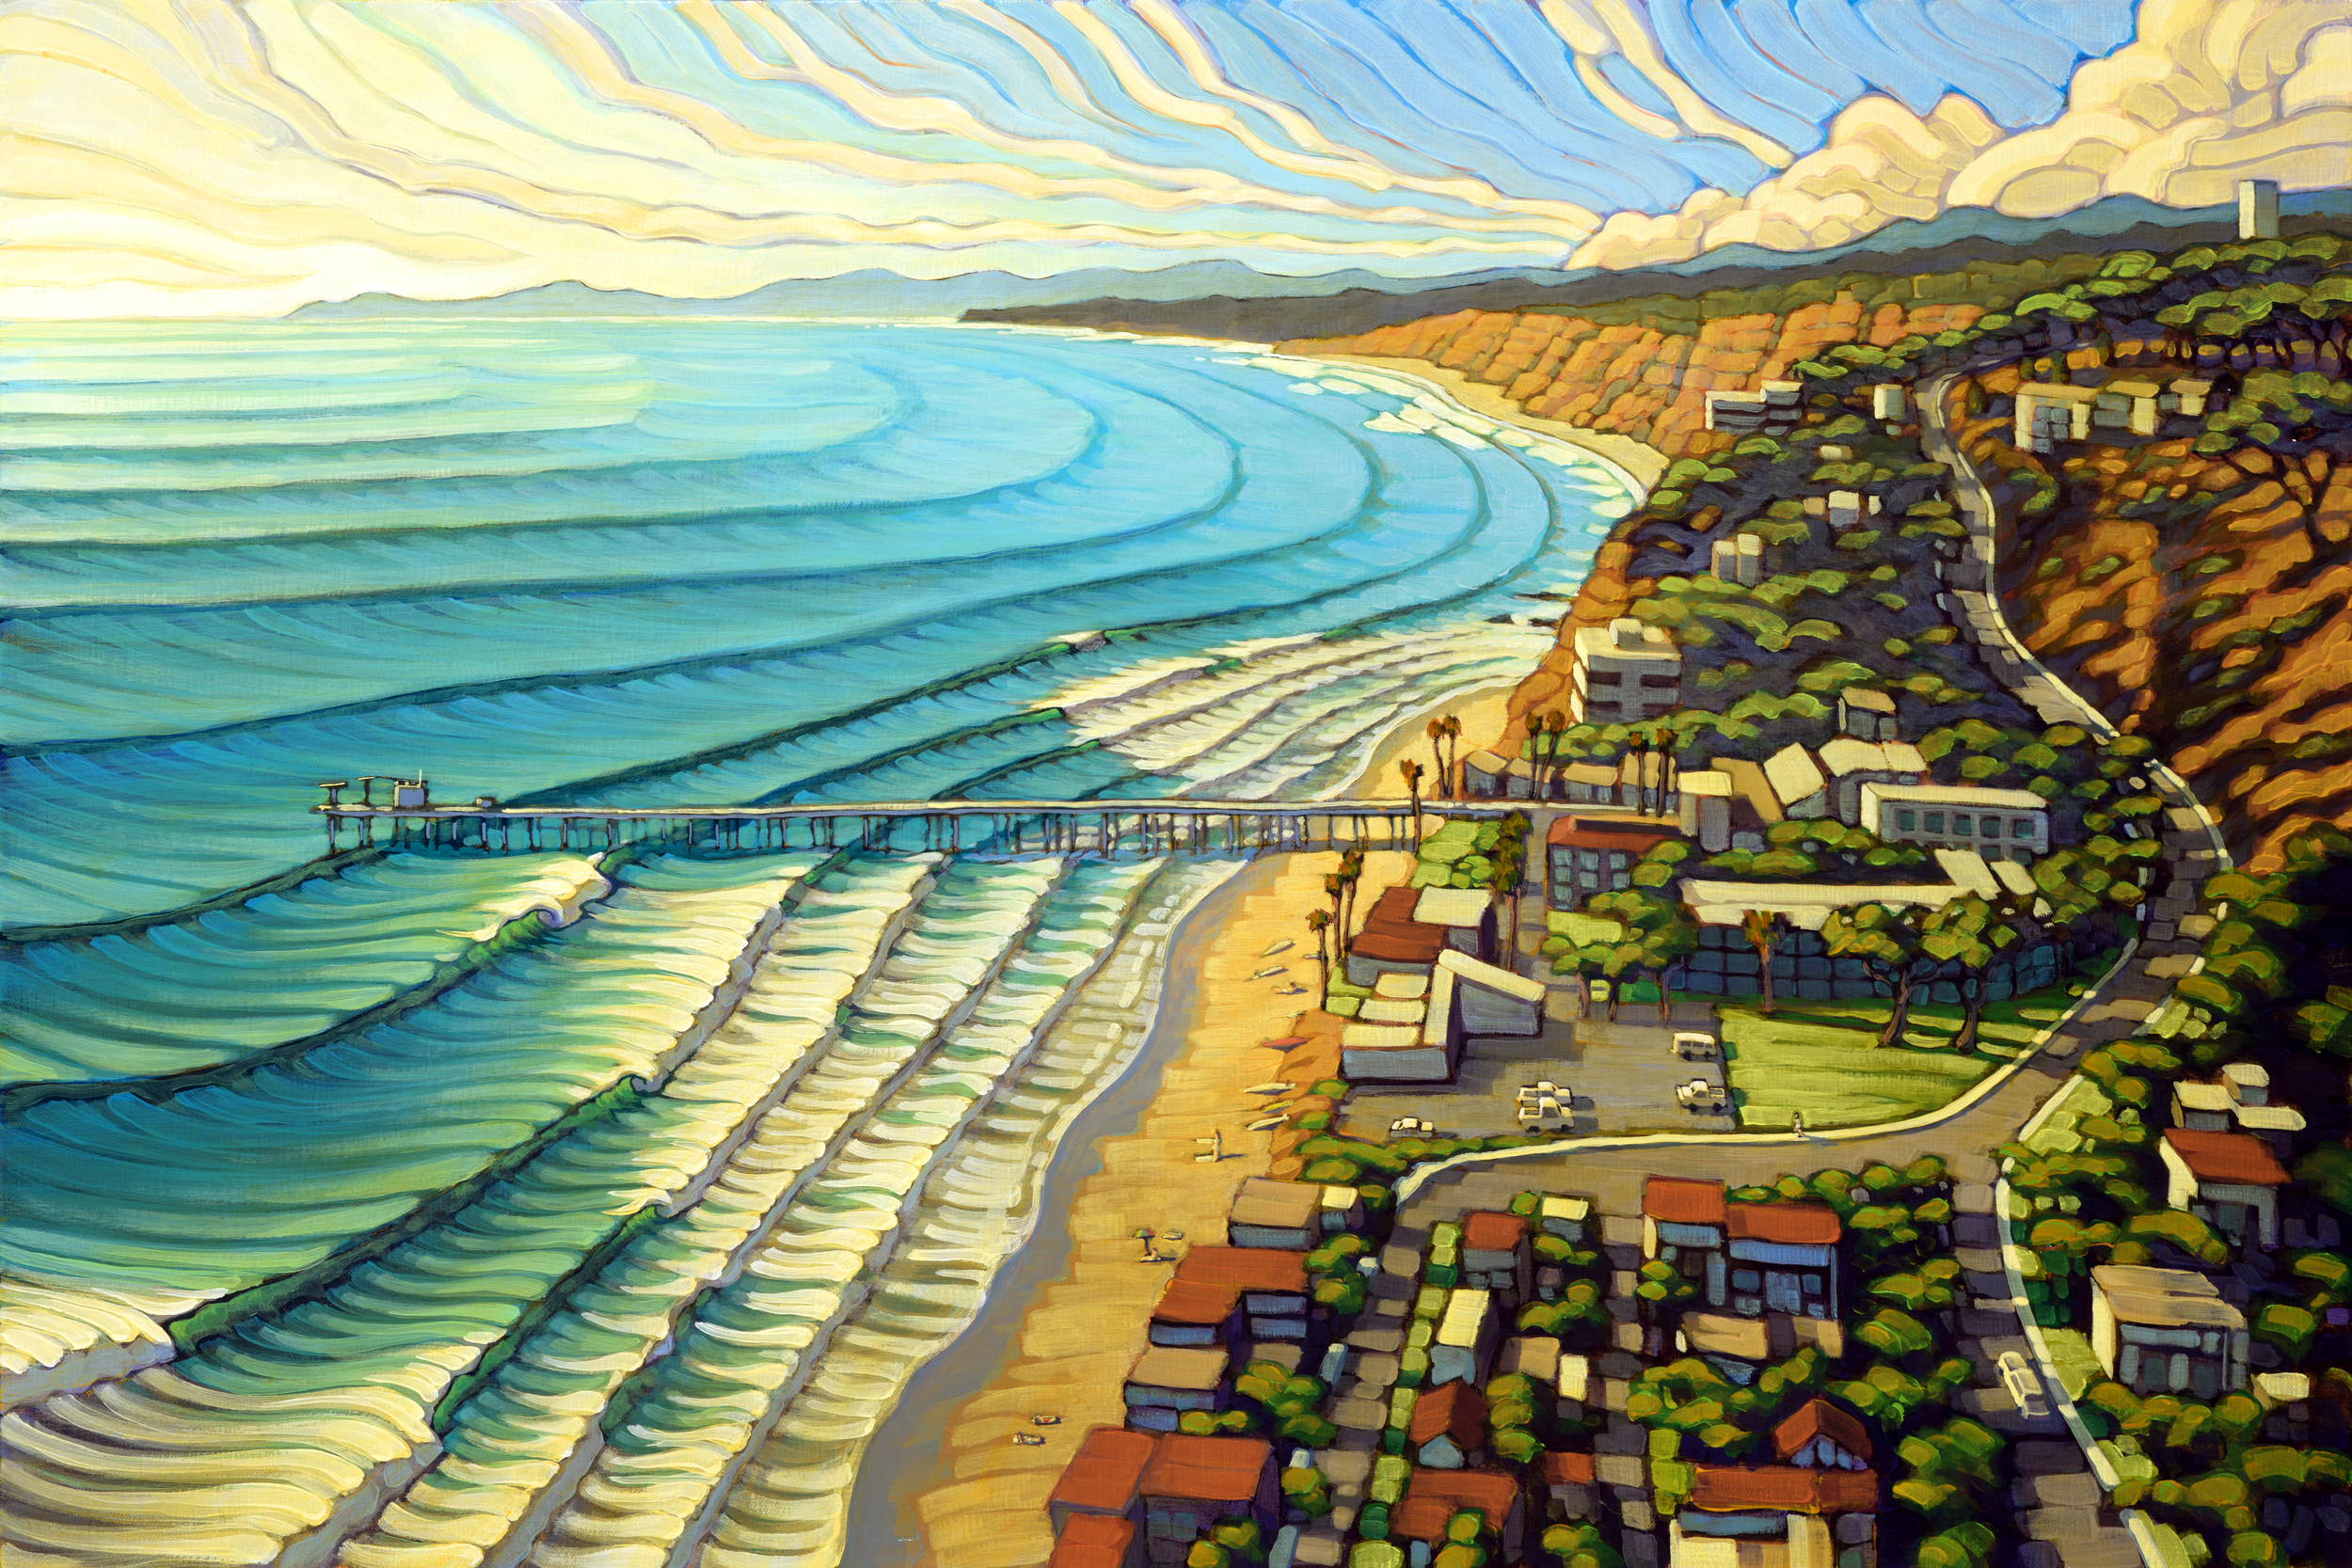 Matt Beard's22nd Annual Luau and Legends of Surfing Invitational featured event artwork will be sold at auction at the Luau.